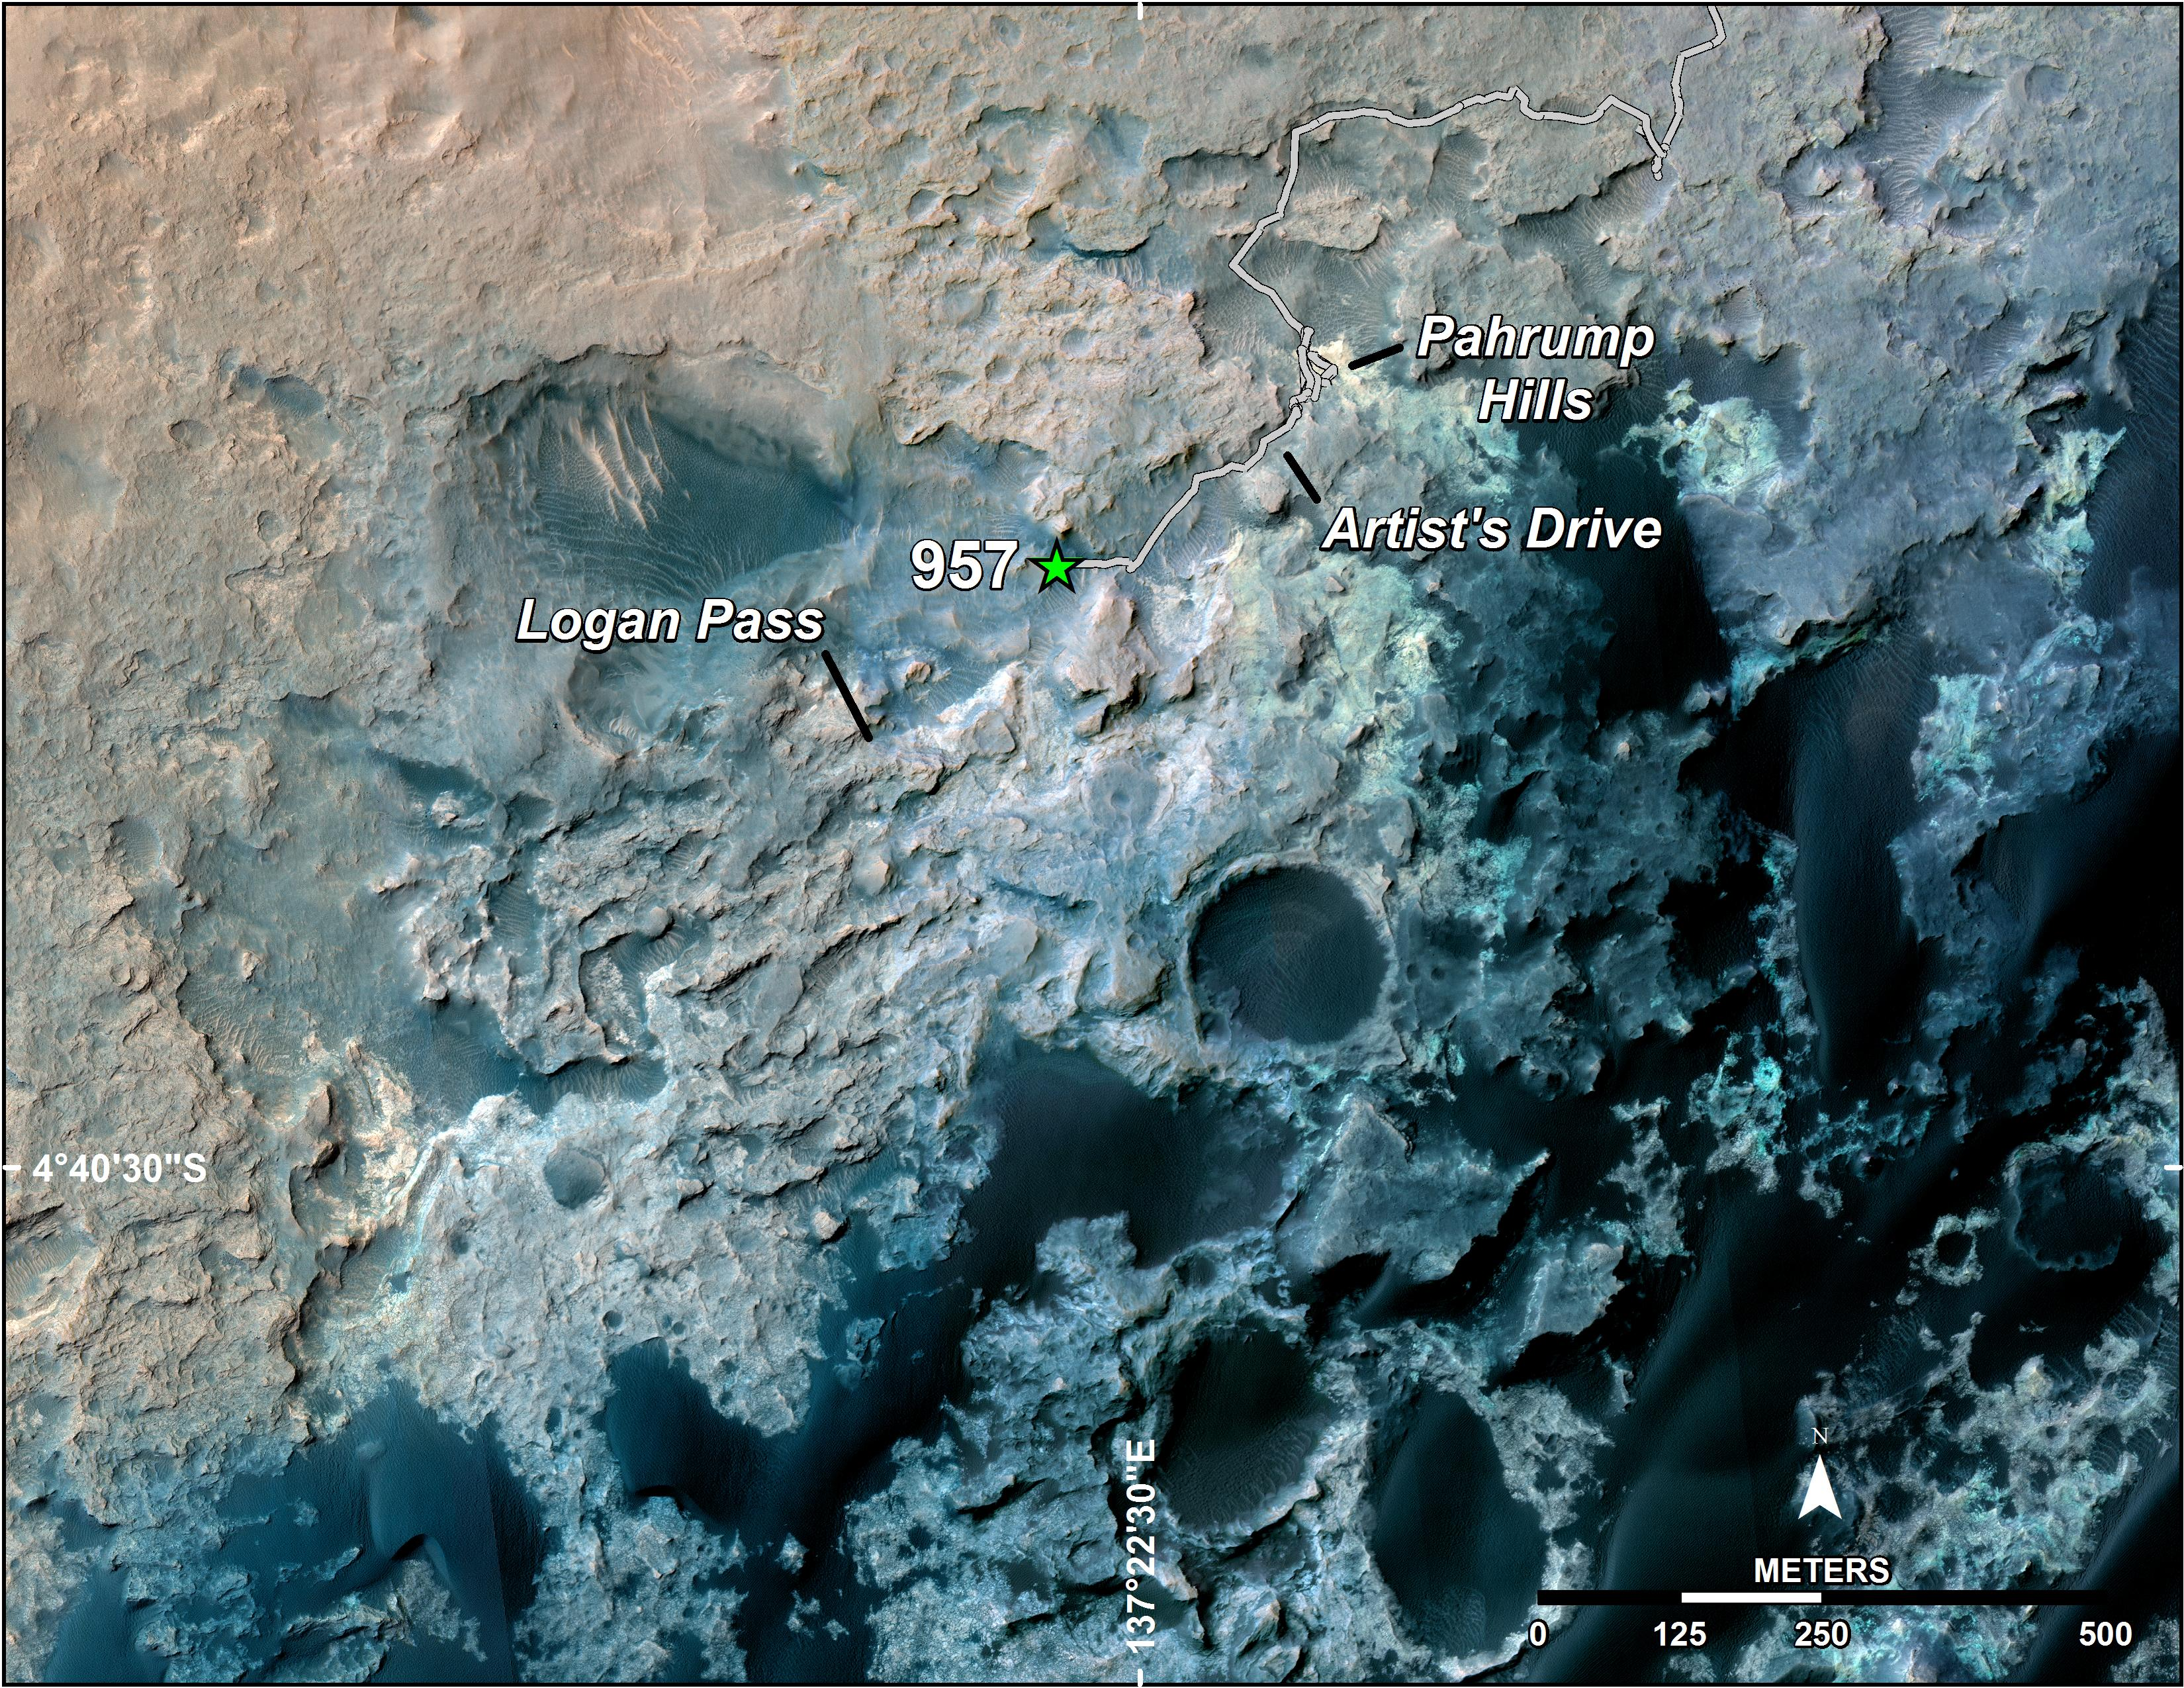 Curiosity s Position After 10 Kilometers   NASA Curiosity s Position After 10 Kilometers